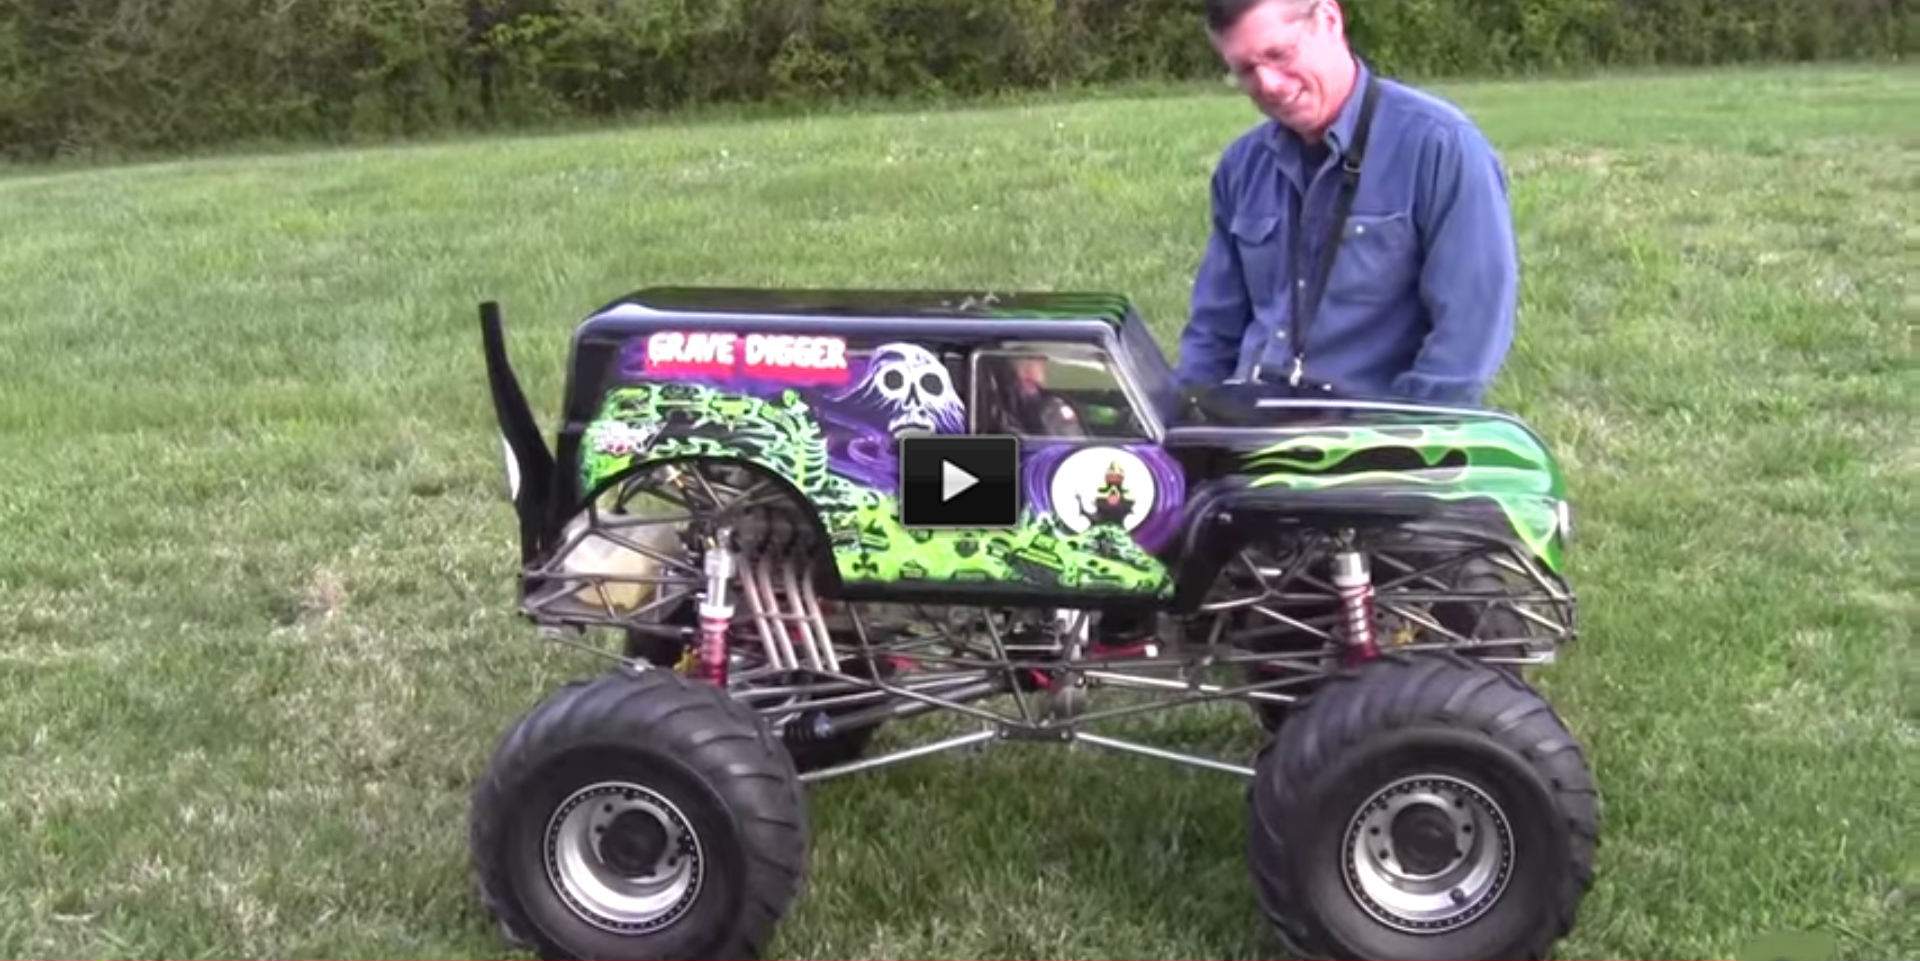 cheap nitro rc gas trucks with 14th Scale Gas Powered Rc Grave Digger Must Watch This Thing In Action on Showthread furthermore Gas Rc Trucks 4x4 18729 likewise GATEWAY Handrail R as well Remote Control Toys Rc Helicopters Rc Cars as well Motorlust.